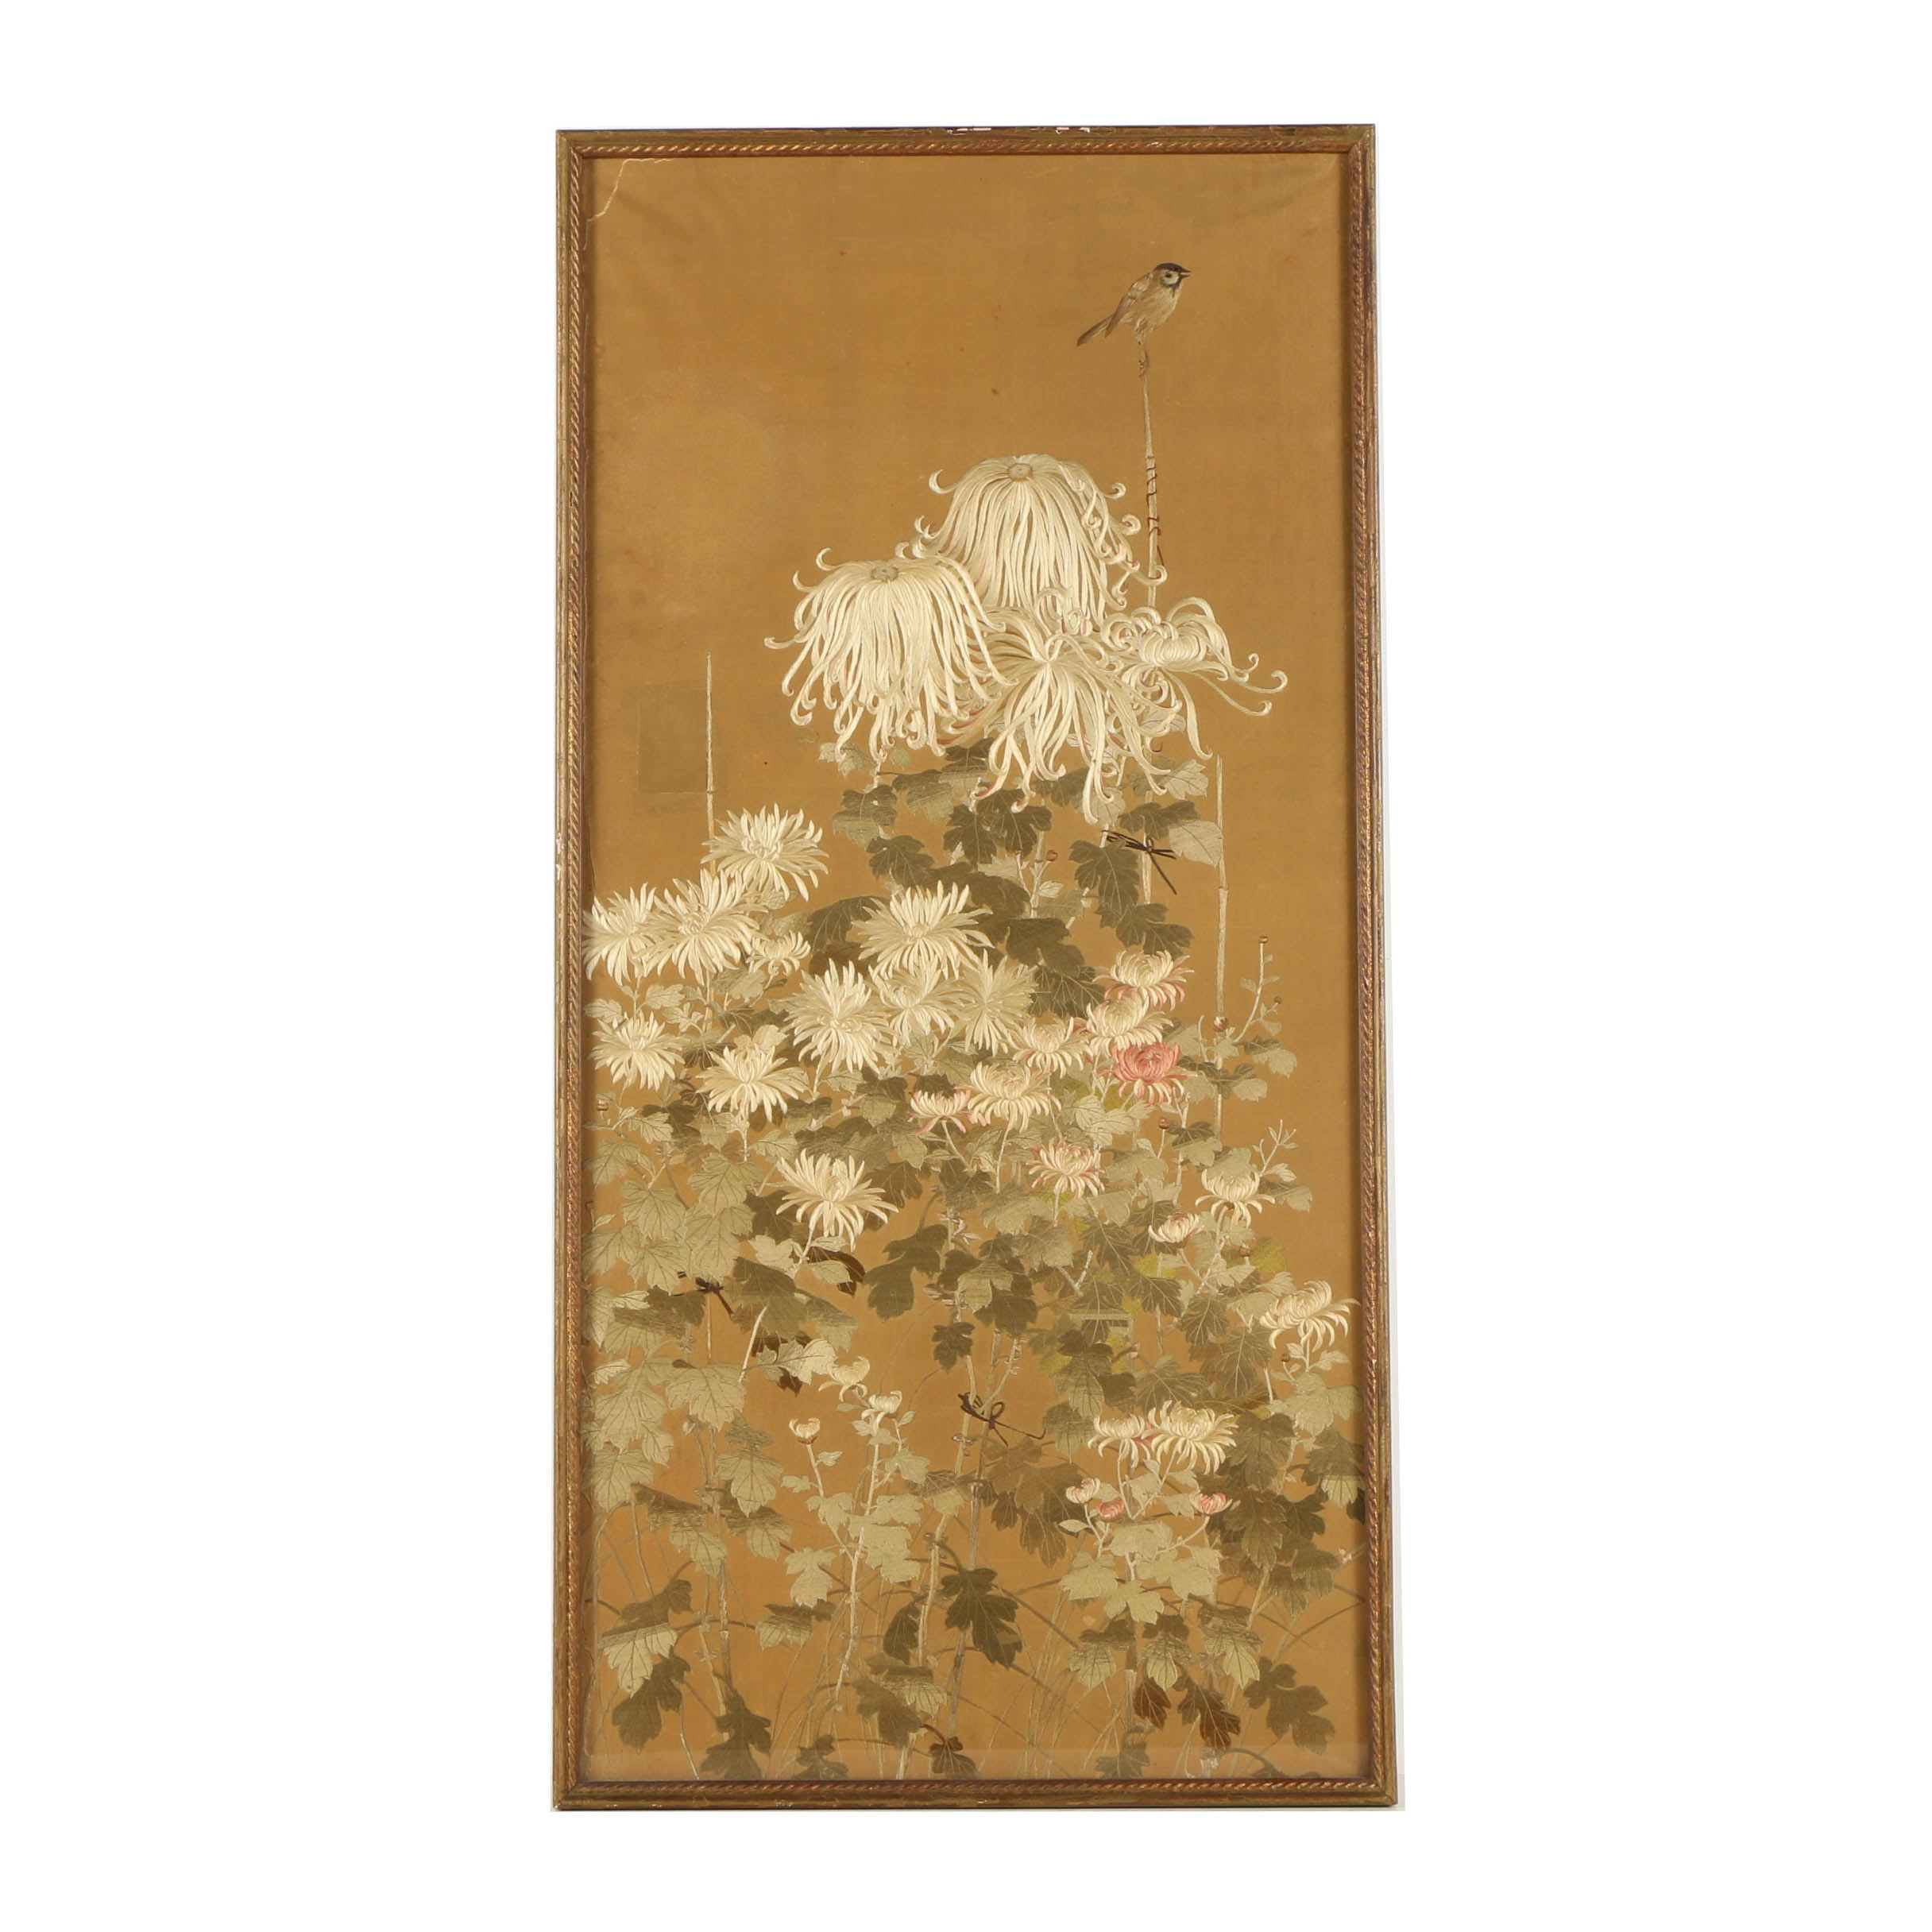 Japanese Embroidery on Silk of Bird and Flower Motif